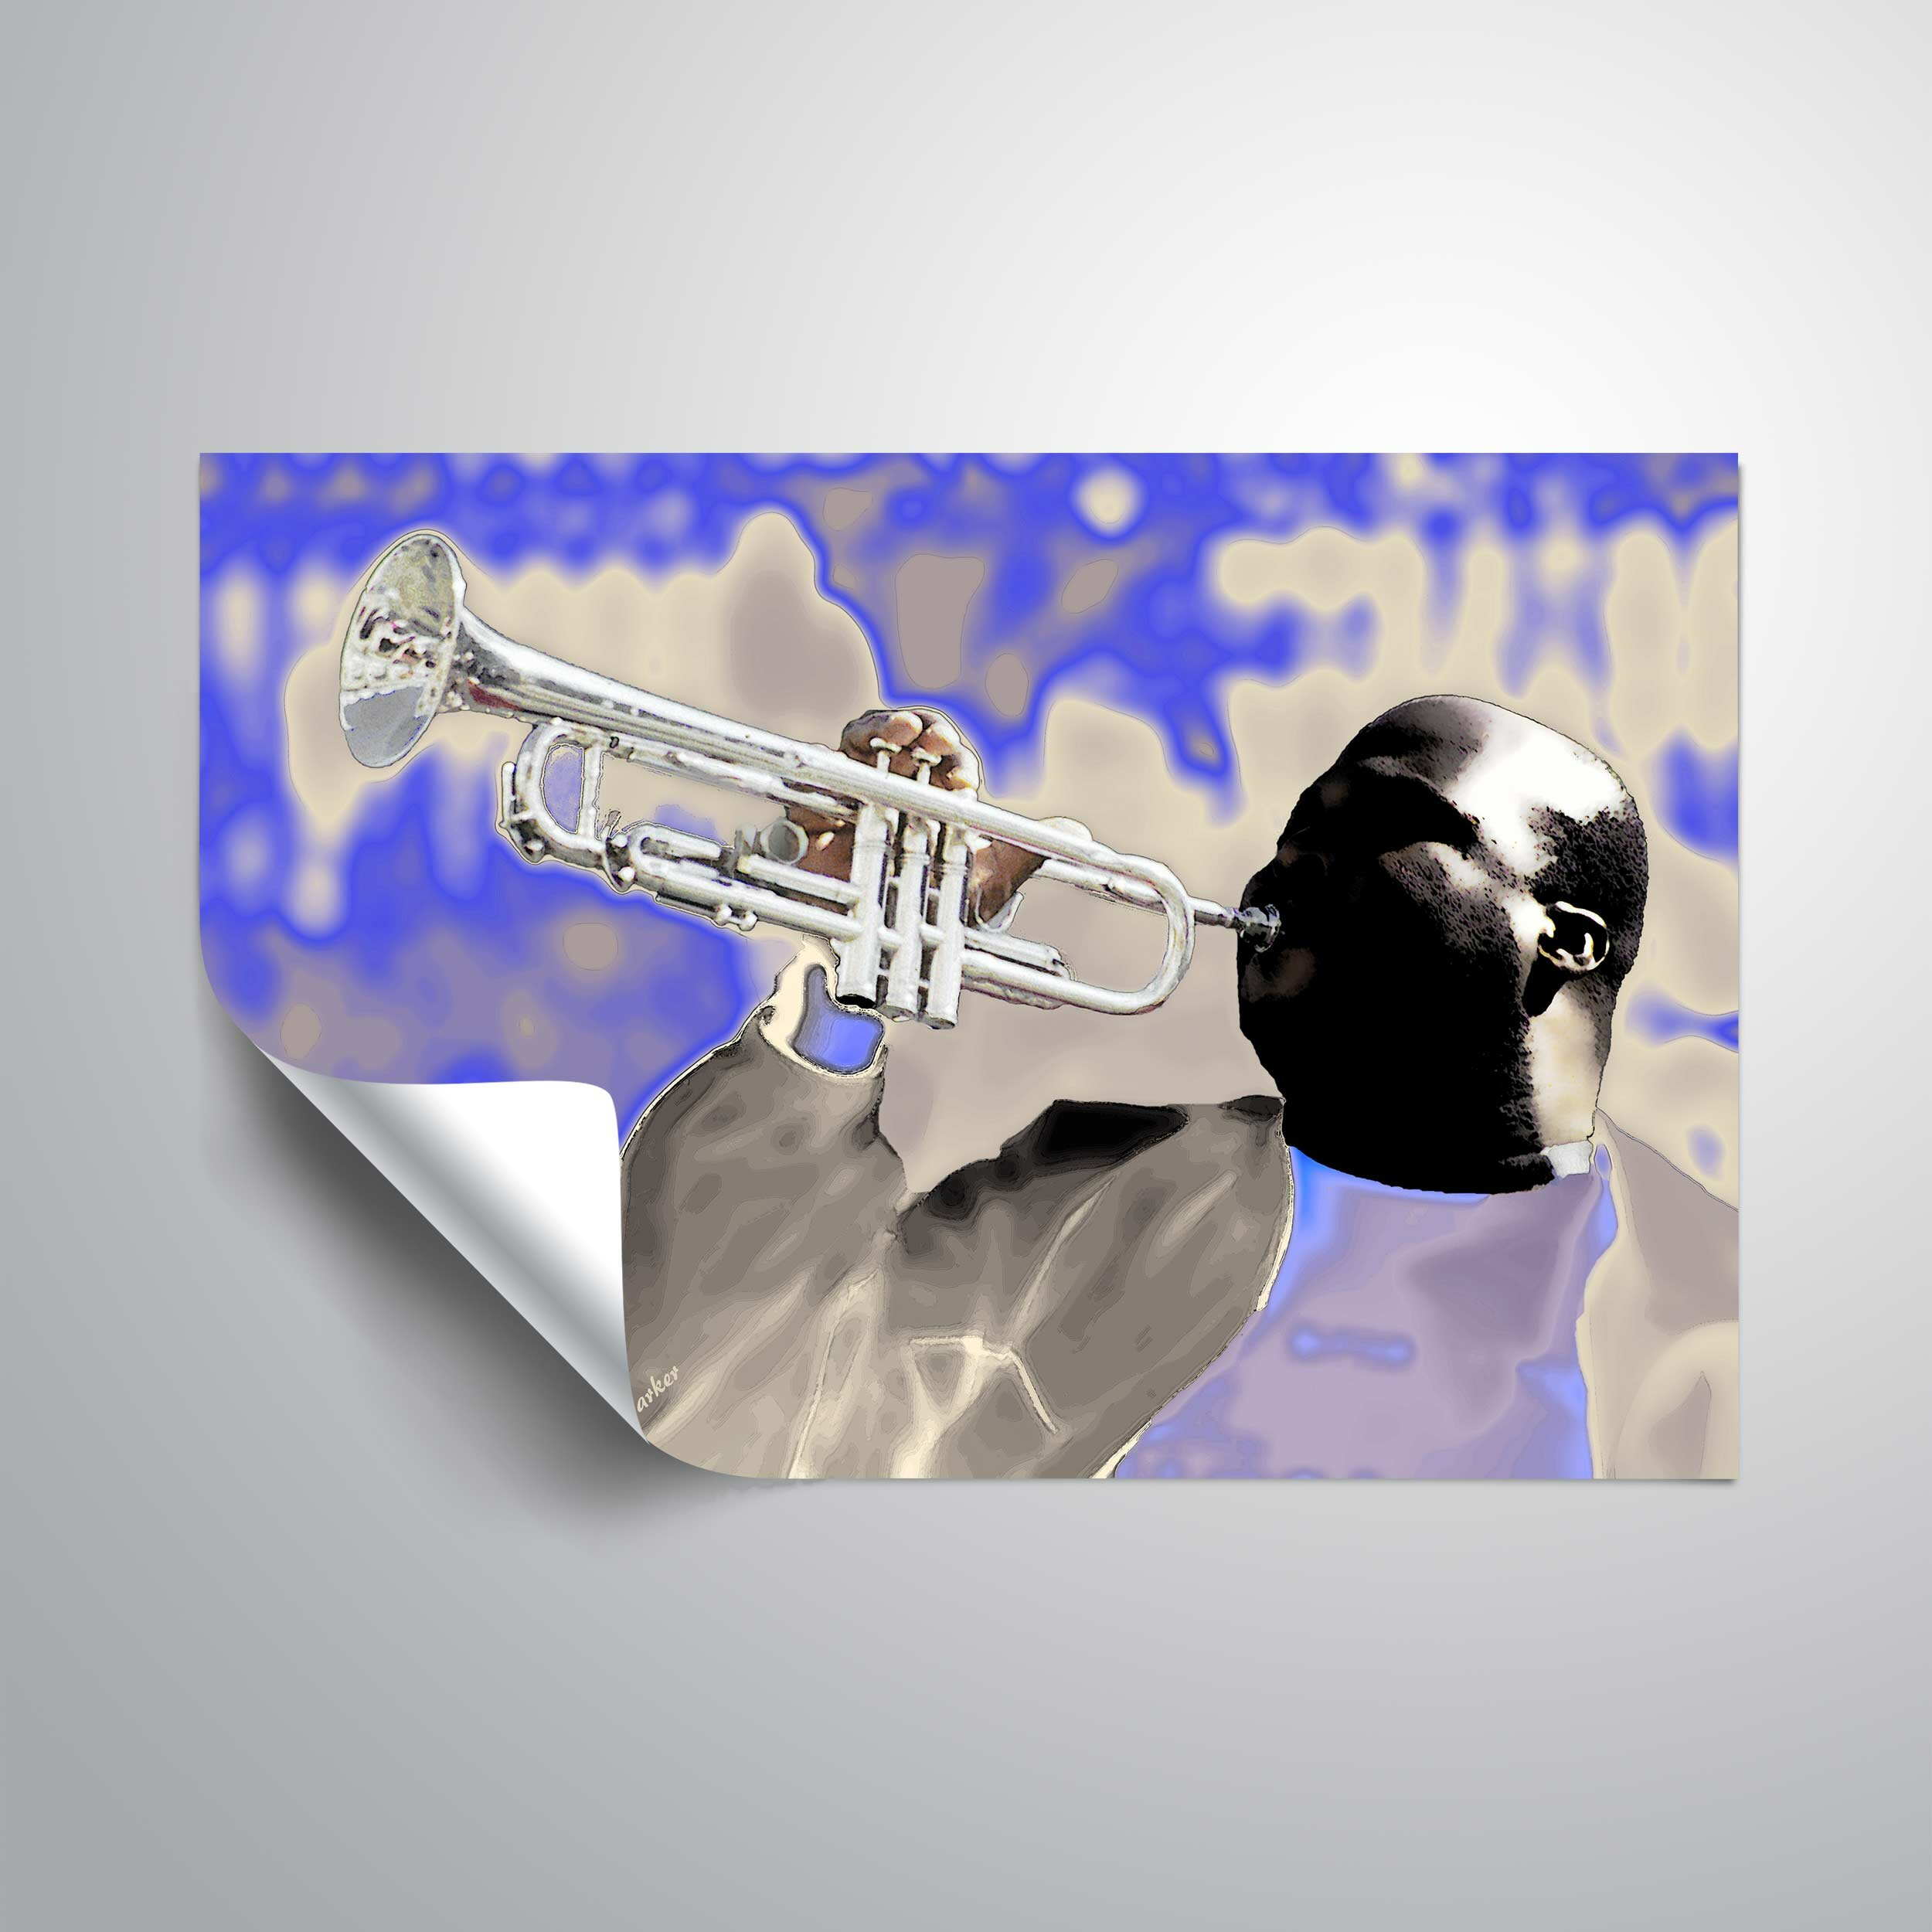 Ebern Designs Smooth Jazz Removable Wall Decal Wayfair